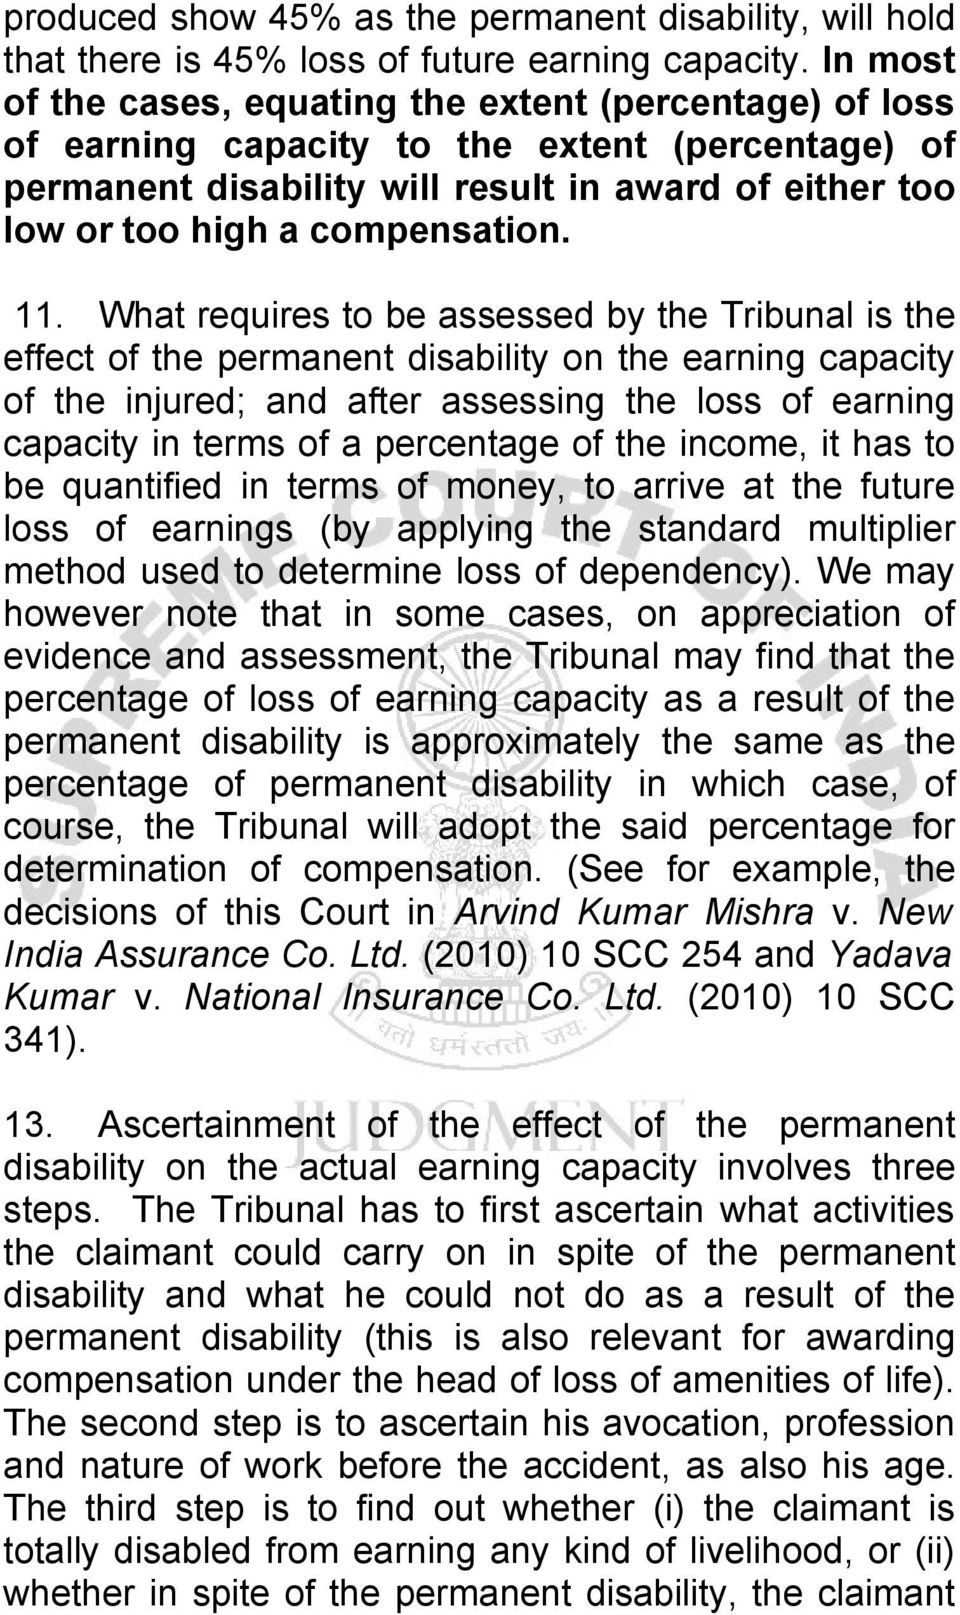 11. What requires to be assessed by the Tribunal is the effect of the permanent disability on the earning capacity of the injured; and after assessing the loss of earning capacity in terms of a